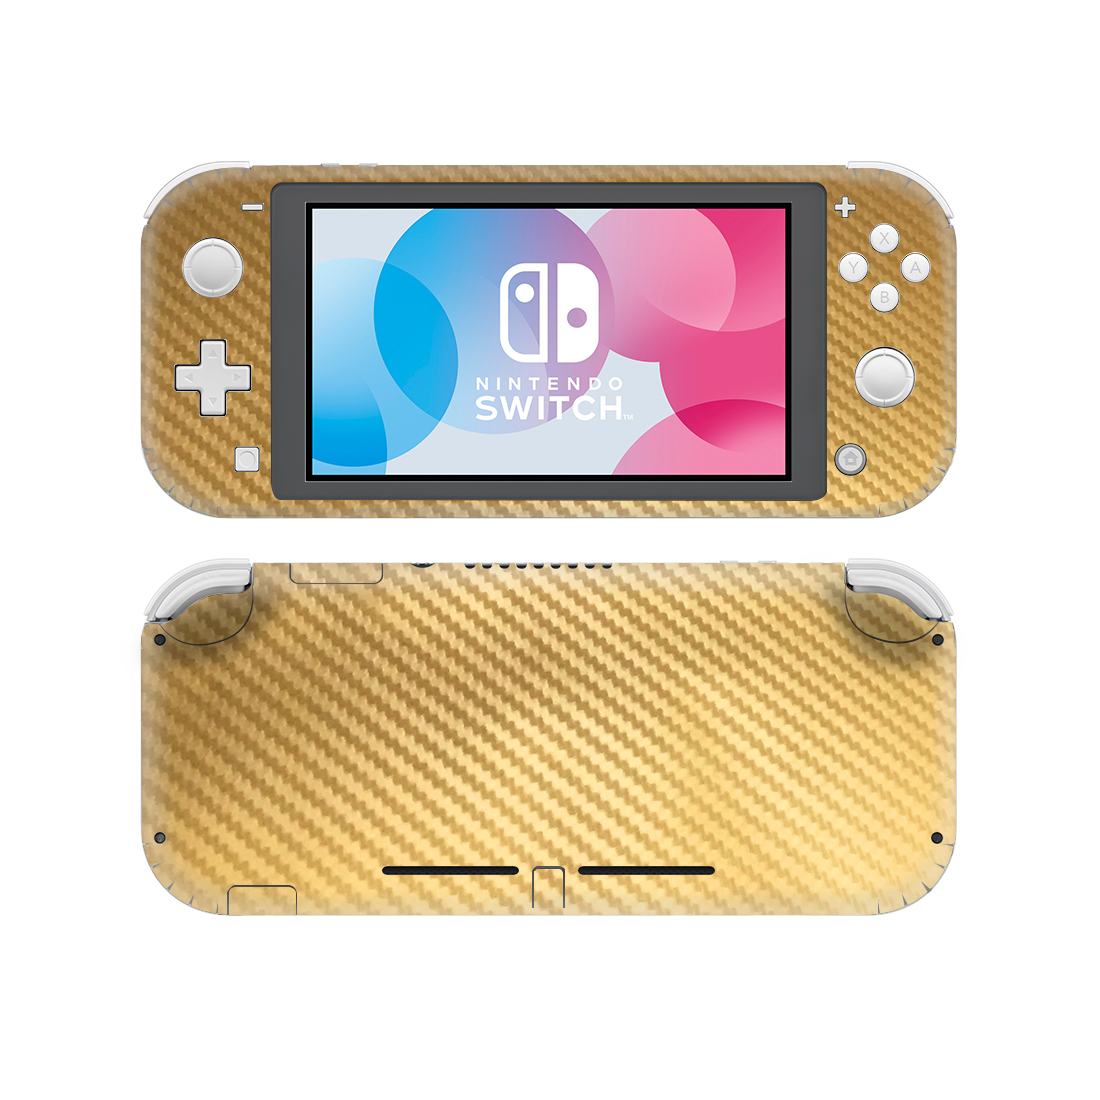 Cool Carbon Fiber Gold Style Vinyl Skin Sticker For Nintendo Switch Lite Nsl Protective Film Decal Skins Cover Stickers Aliexpress